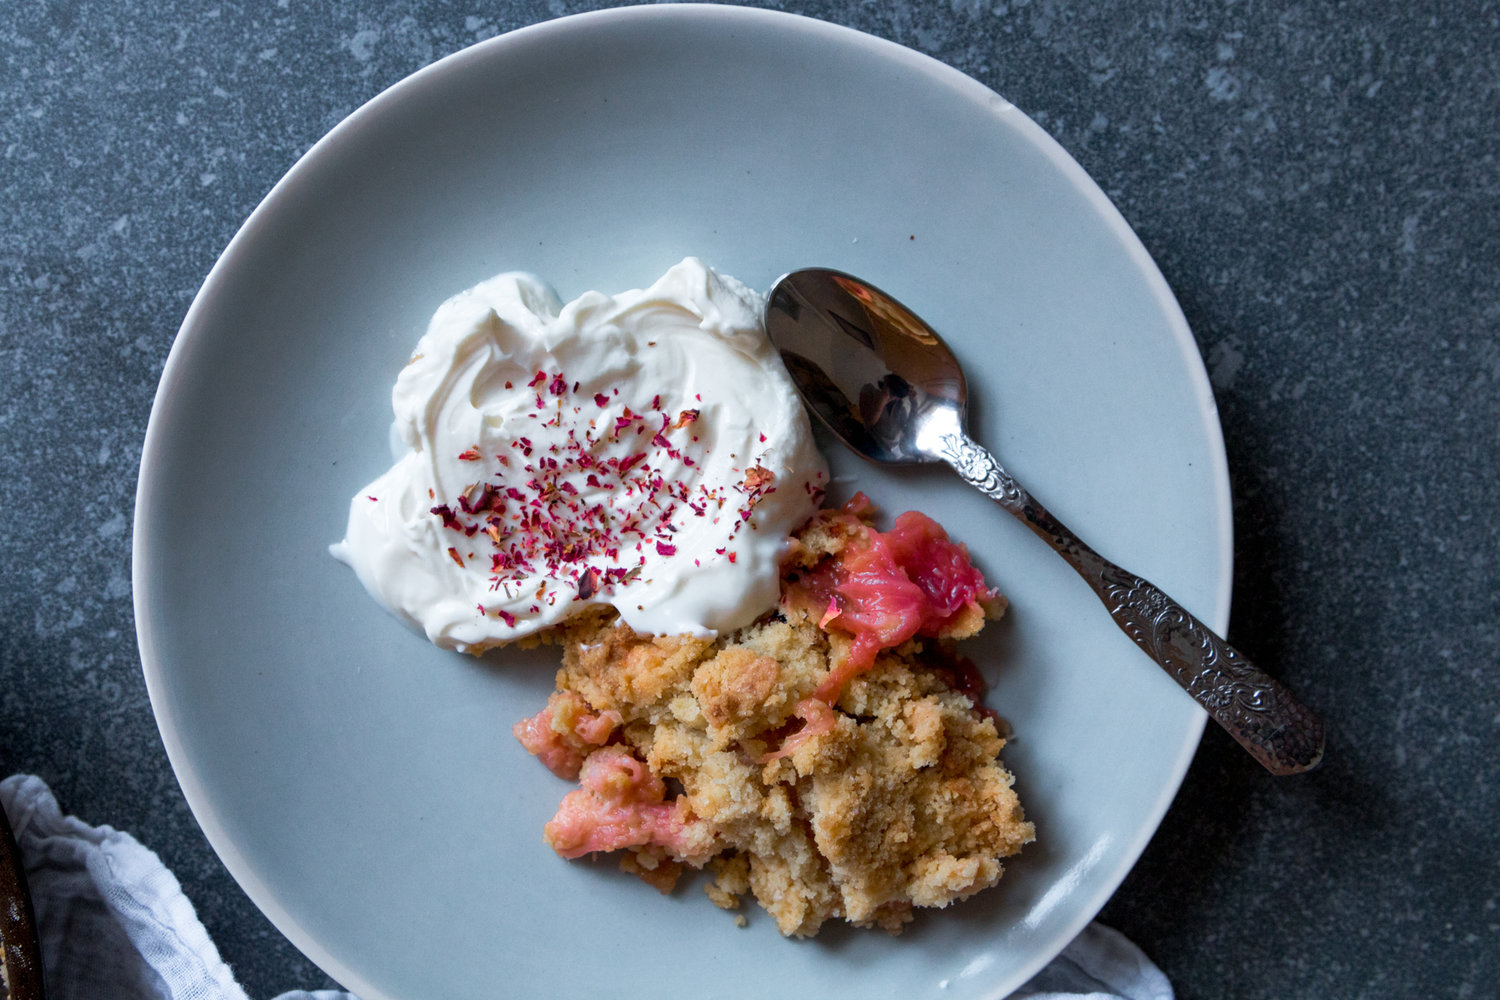 Rhubarb, ginger and rose crumble